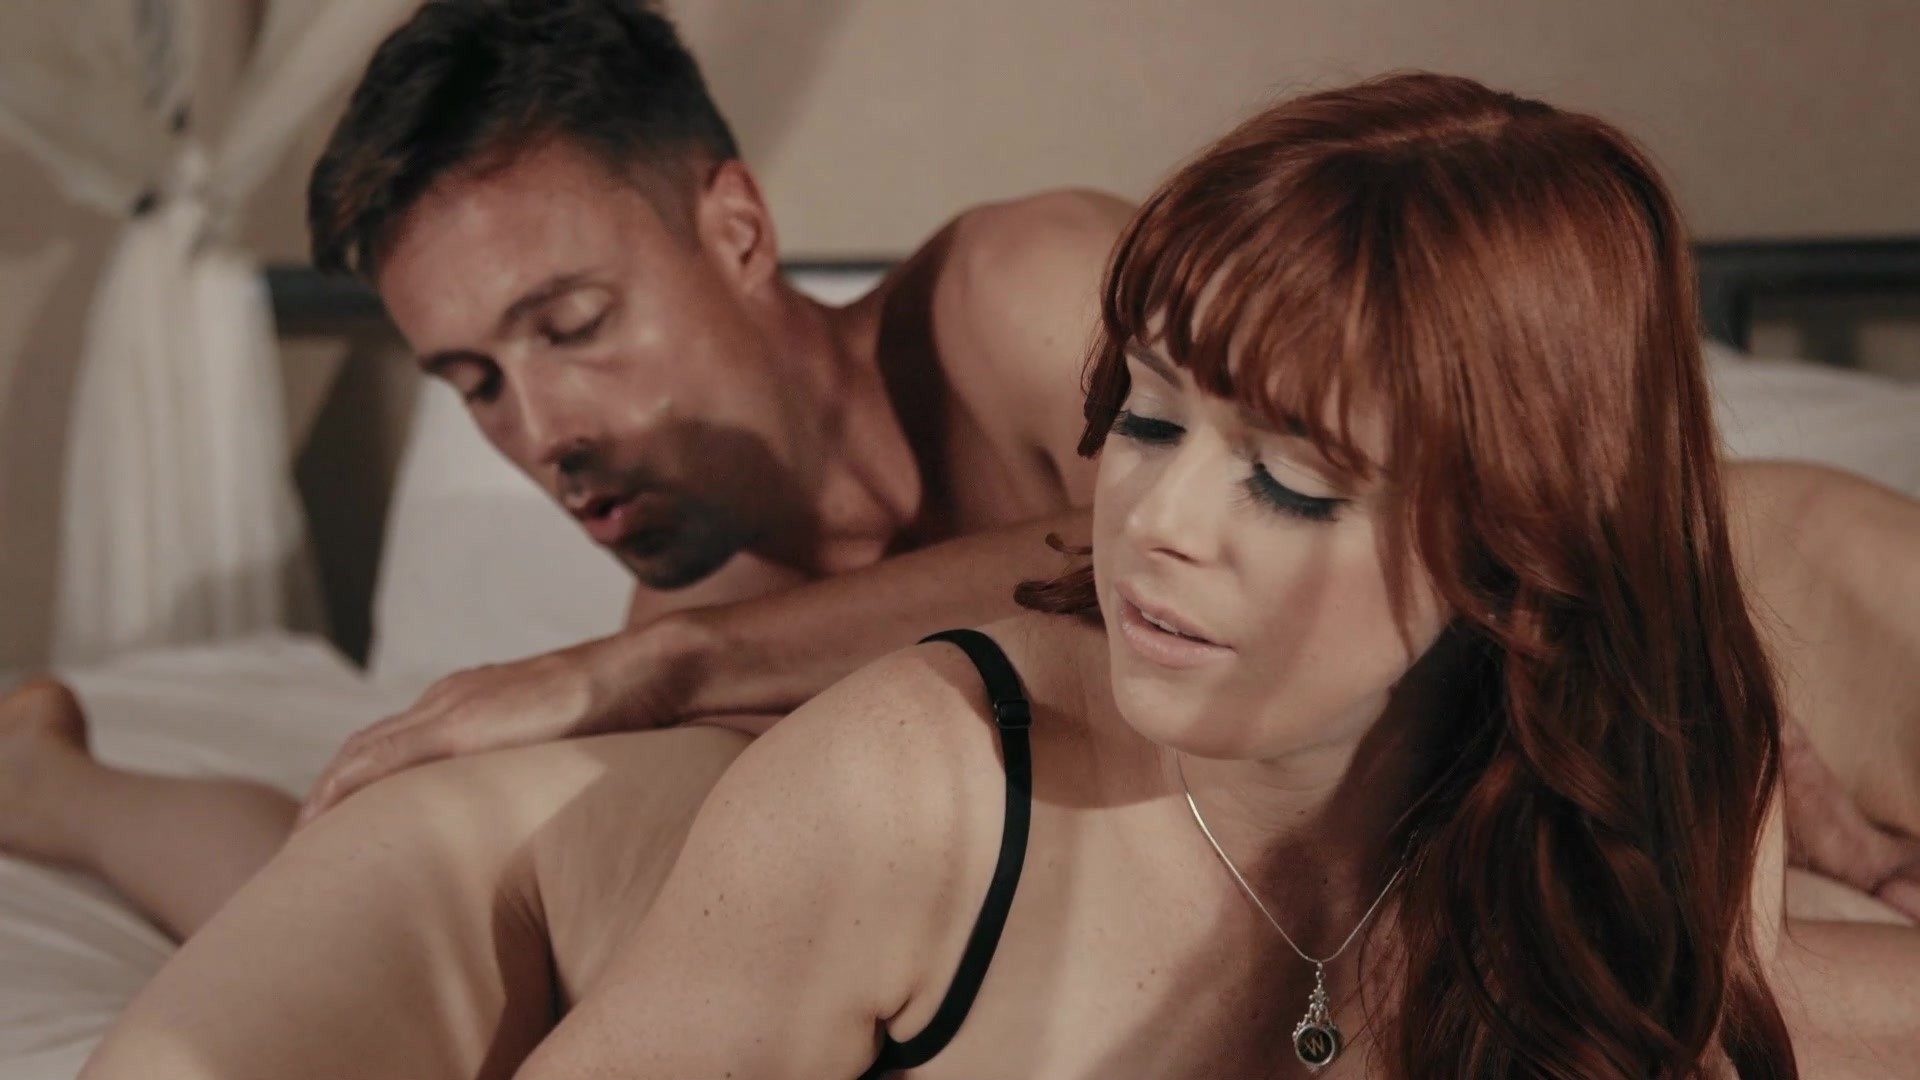 Scene with Richie Calhoun and Penny Pax - image 9 out of 20